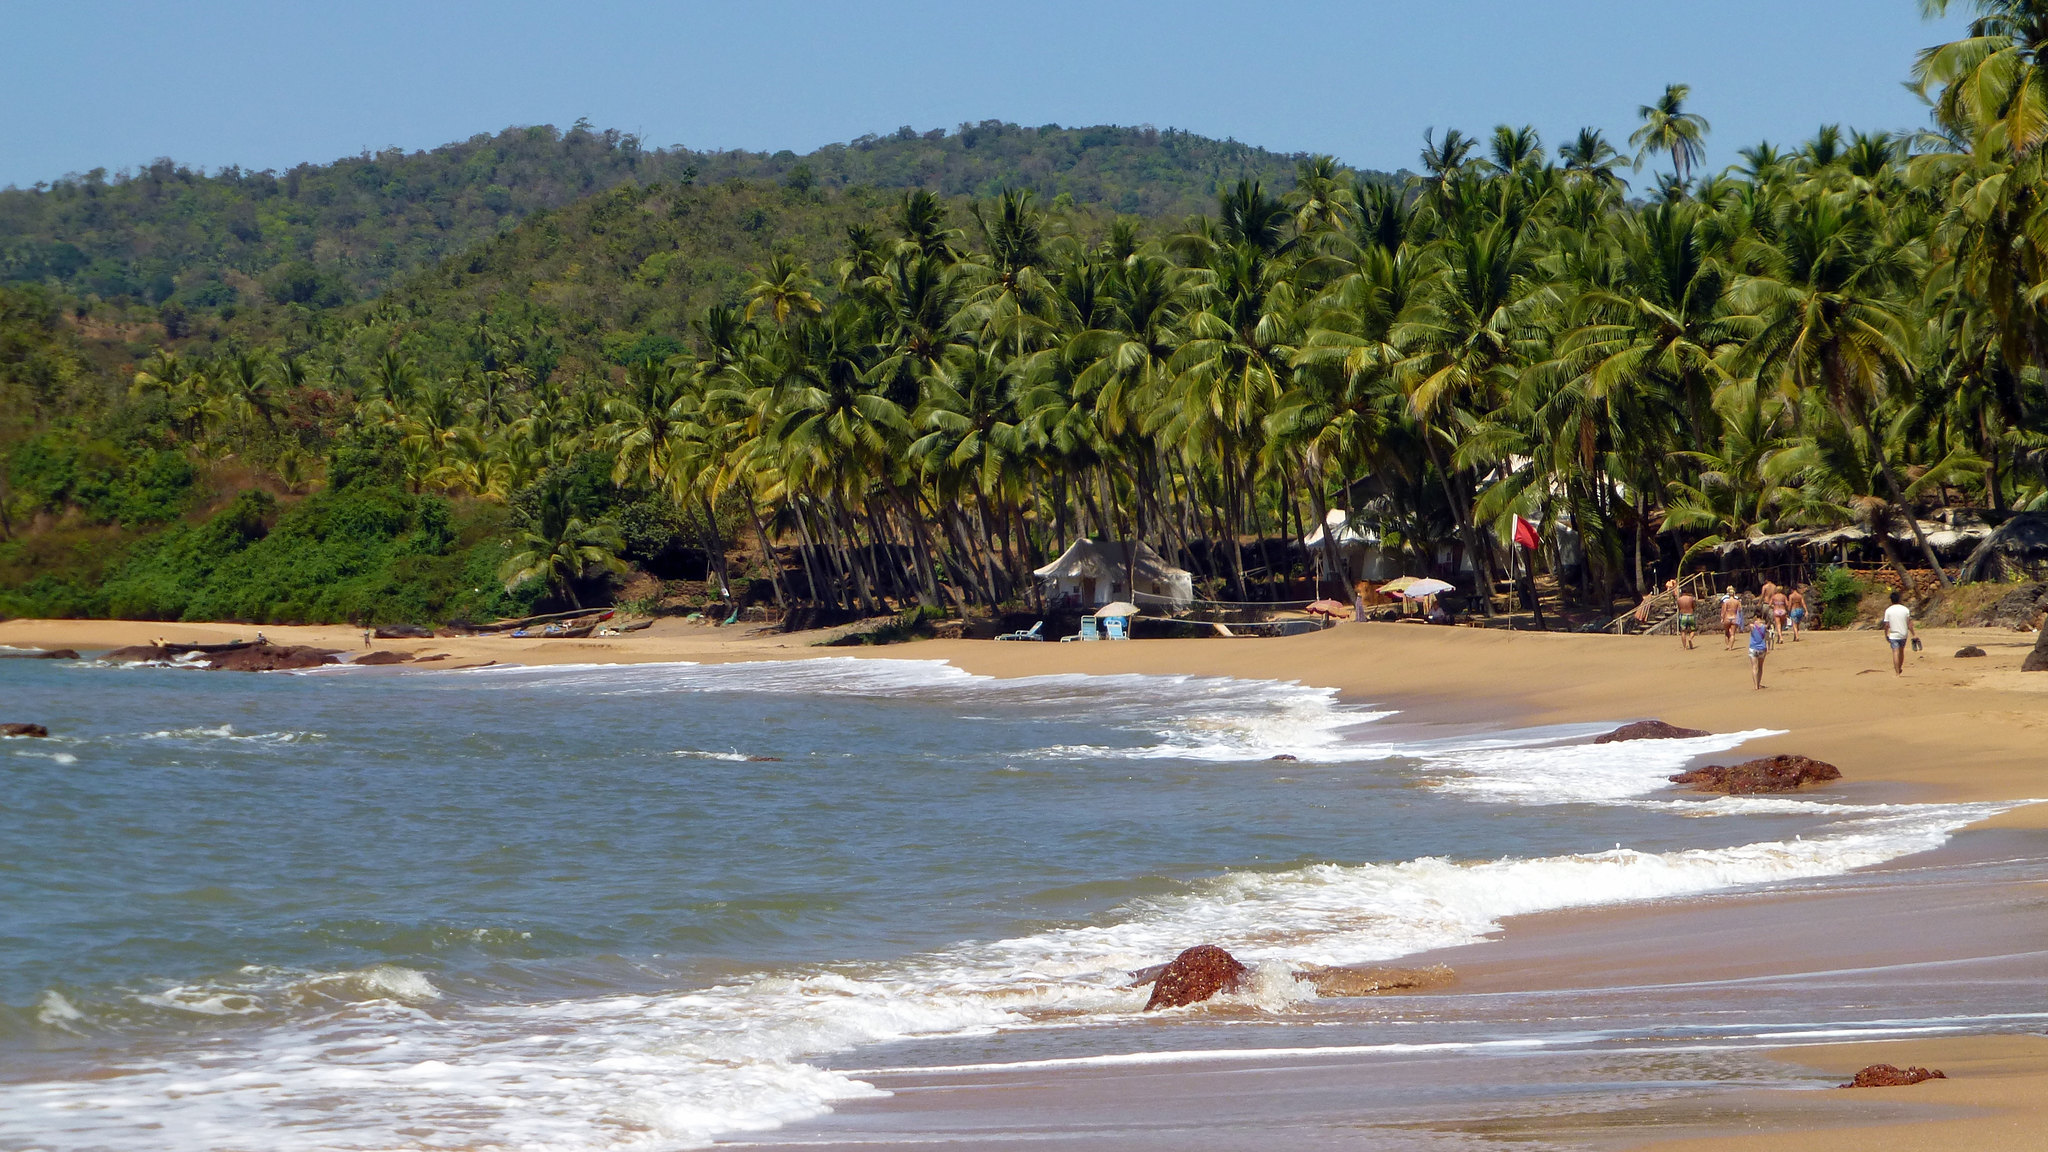 6 Best Things To Do in Goa, India [with Suggested Tours]